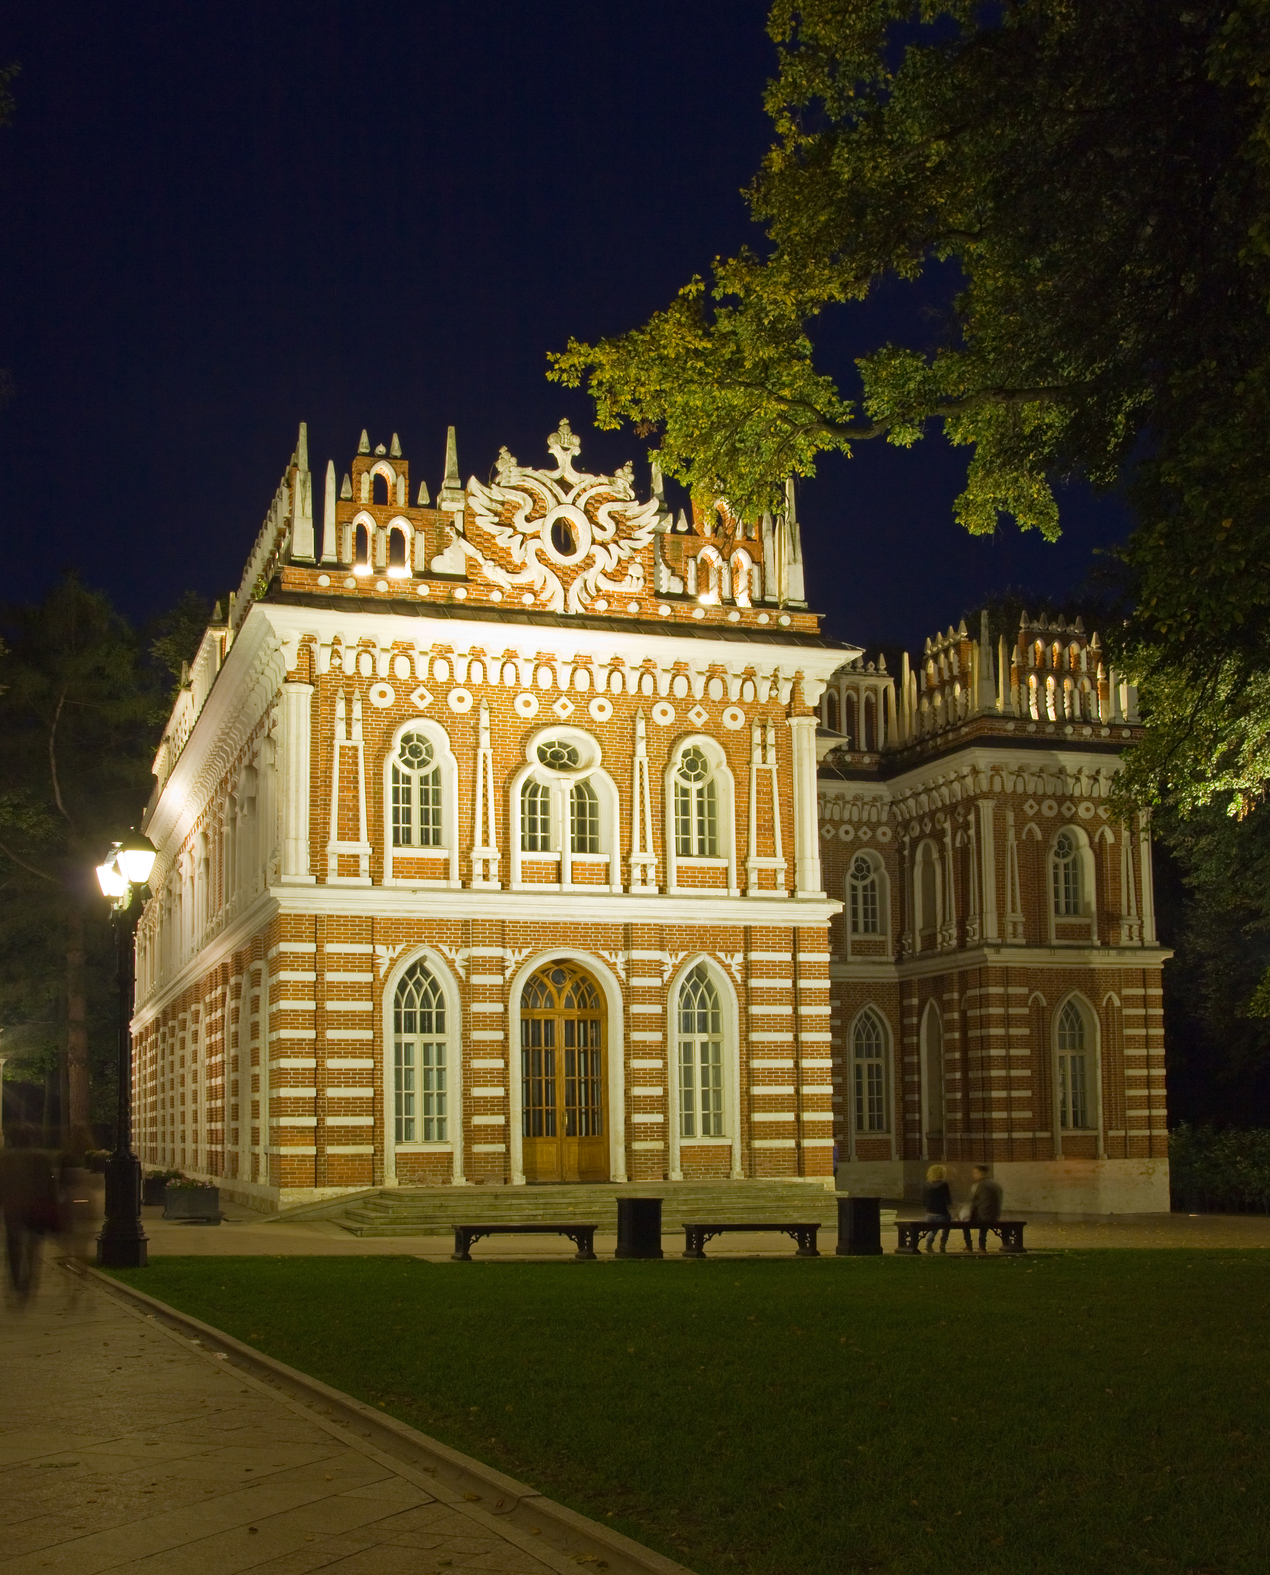 Palace in Tsaritsyno Park in Moscow. Good example of intricate and unique design